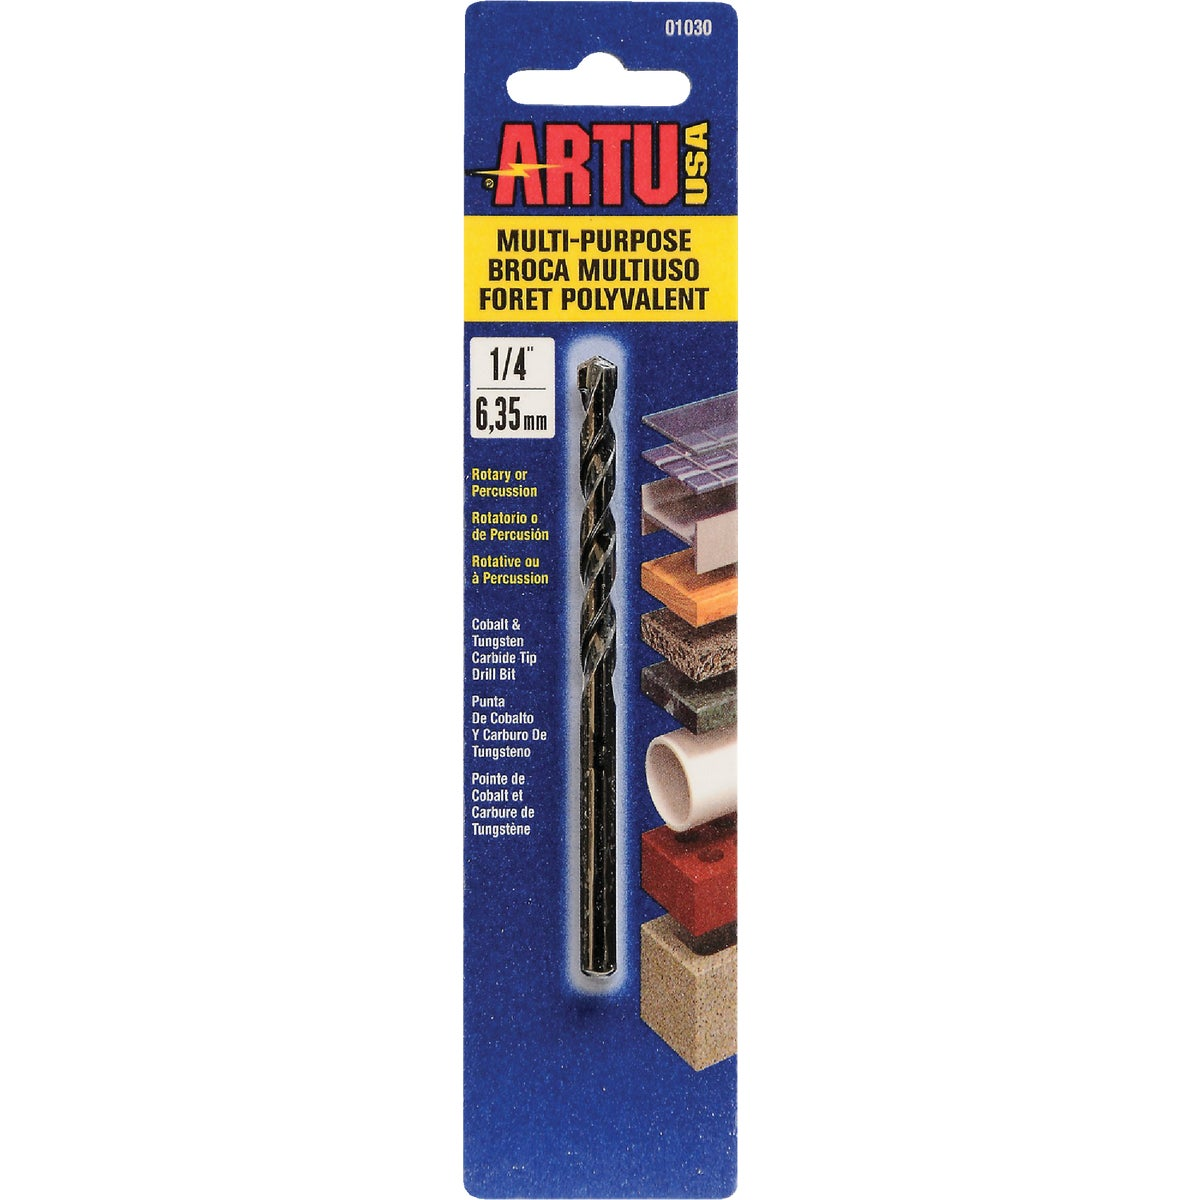 "1/4"" MULTIPURPOSE BIT - 01030 by Artu Usa Inc"